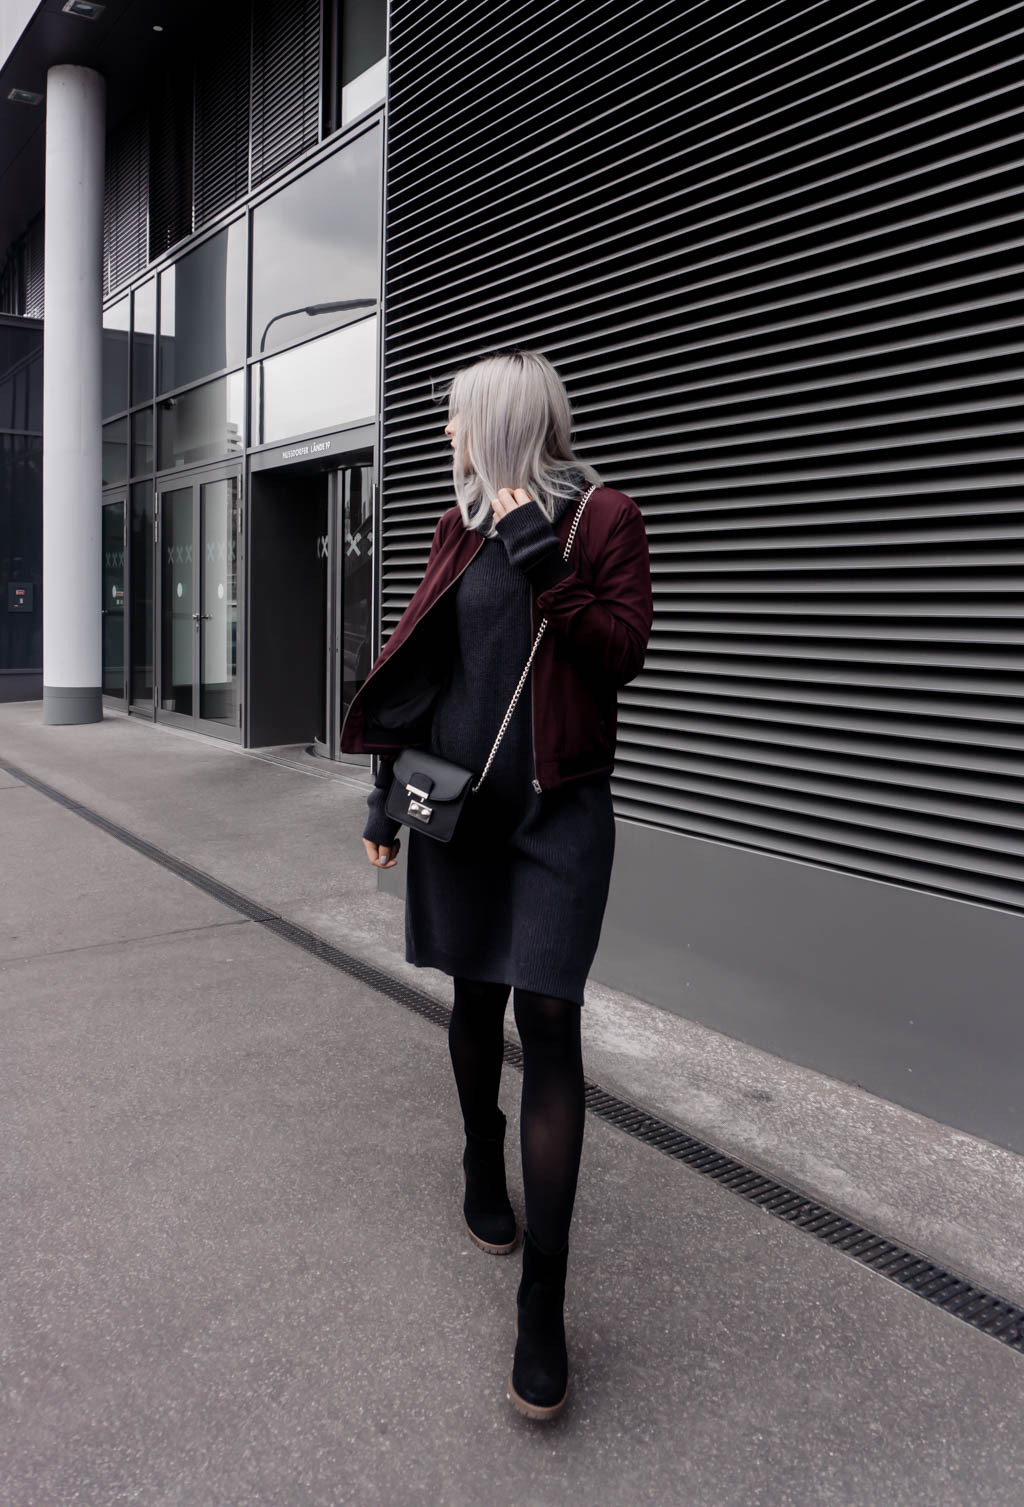 The Cosmopolitas Outfit: Knit Dress and Burgundy Bomber Jacket